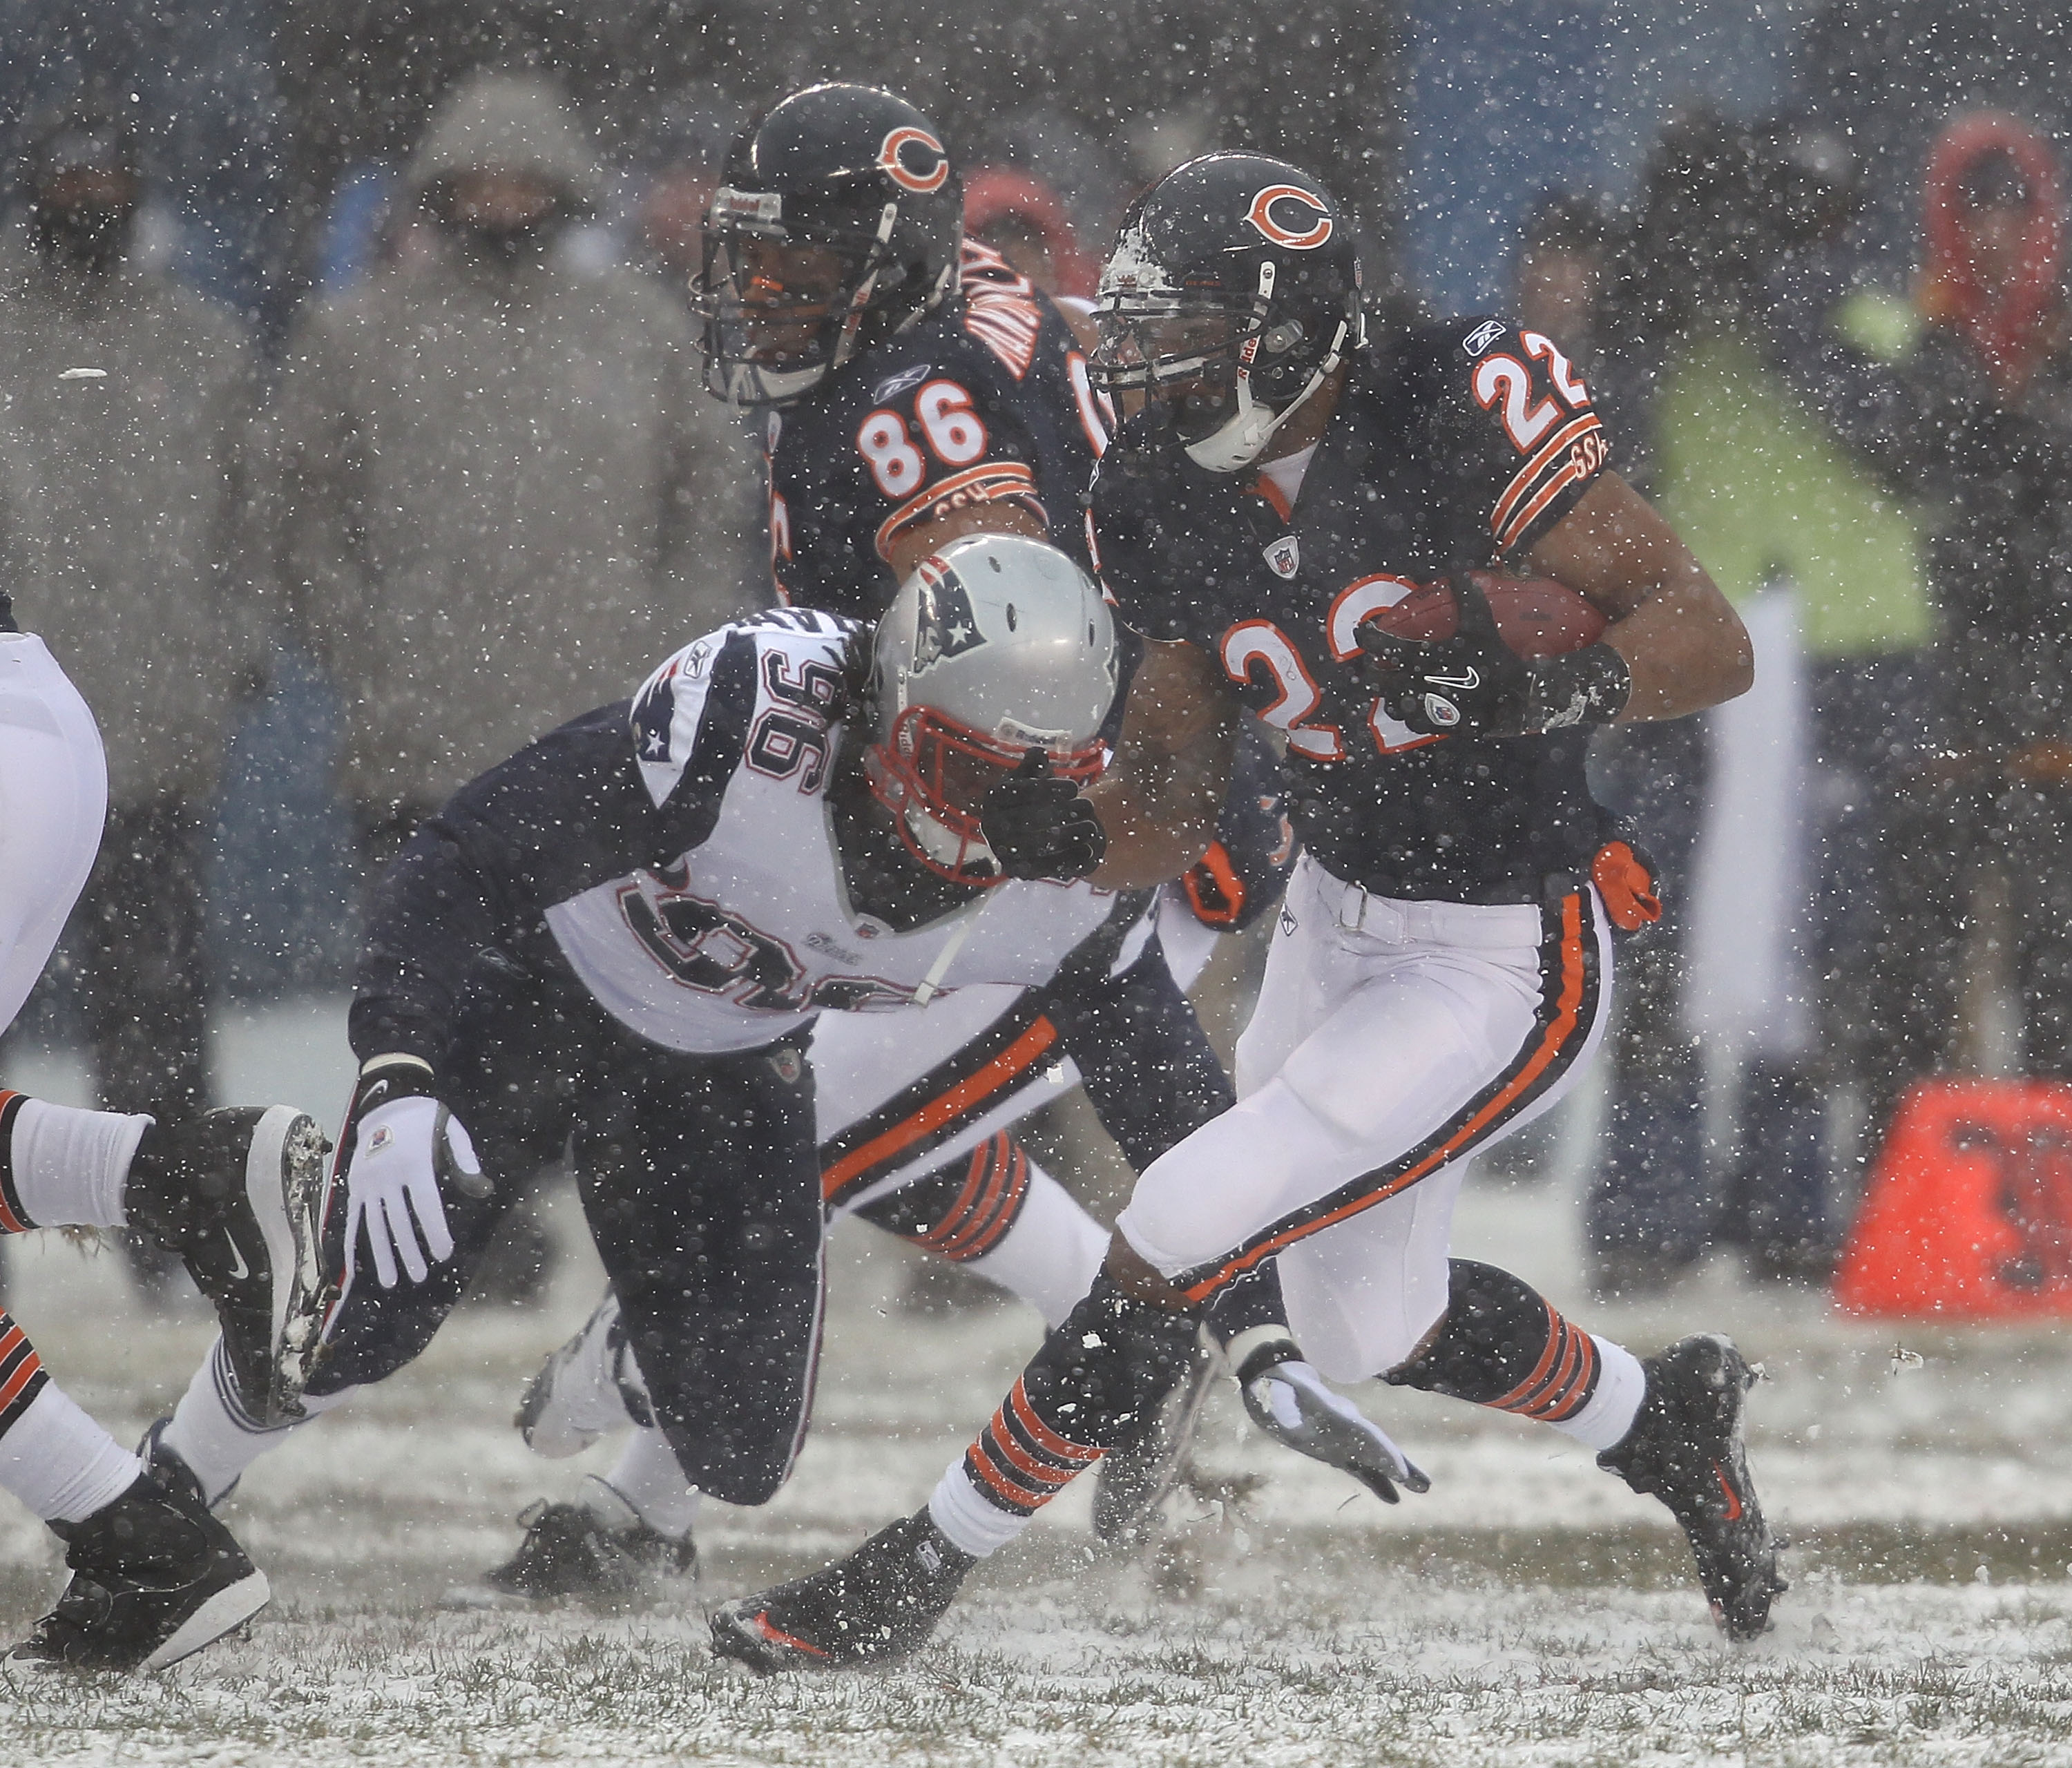 CHICAGO, IL - DECEMBER 12: Matt Forte #22 of the Chicago Bears avoids a tackle attempt by Jermaine Cunningham #96 of the New England Patriots at Soldier Field on December 12, 2010 in Chicago, Illinois. The Patriots defeated the Bears 36-7. (Photo by Jonat